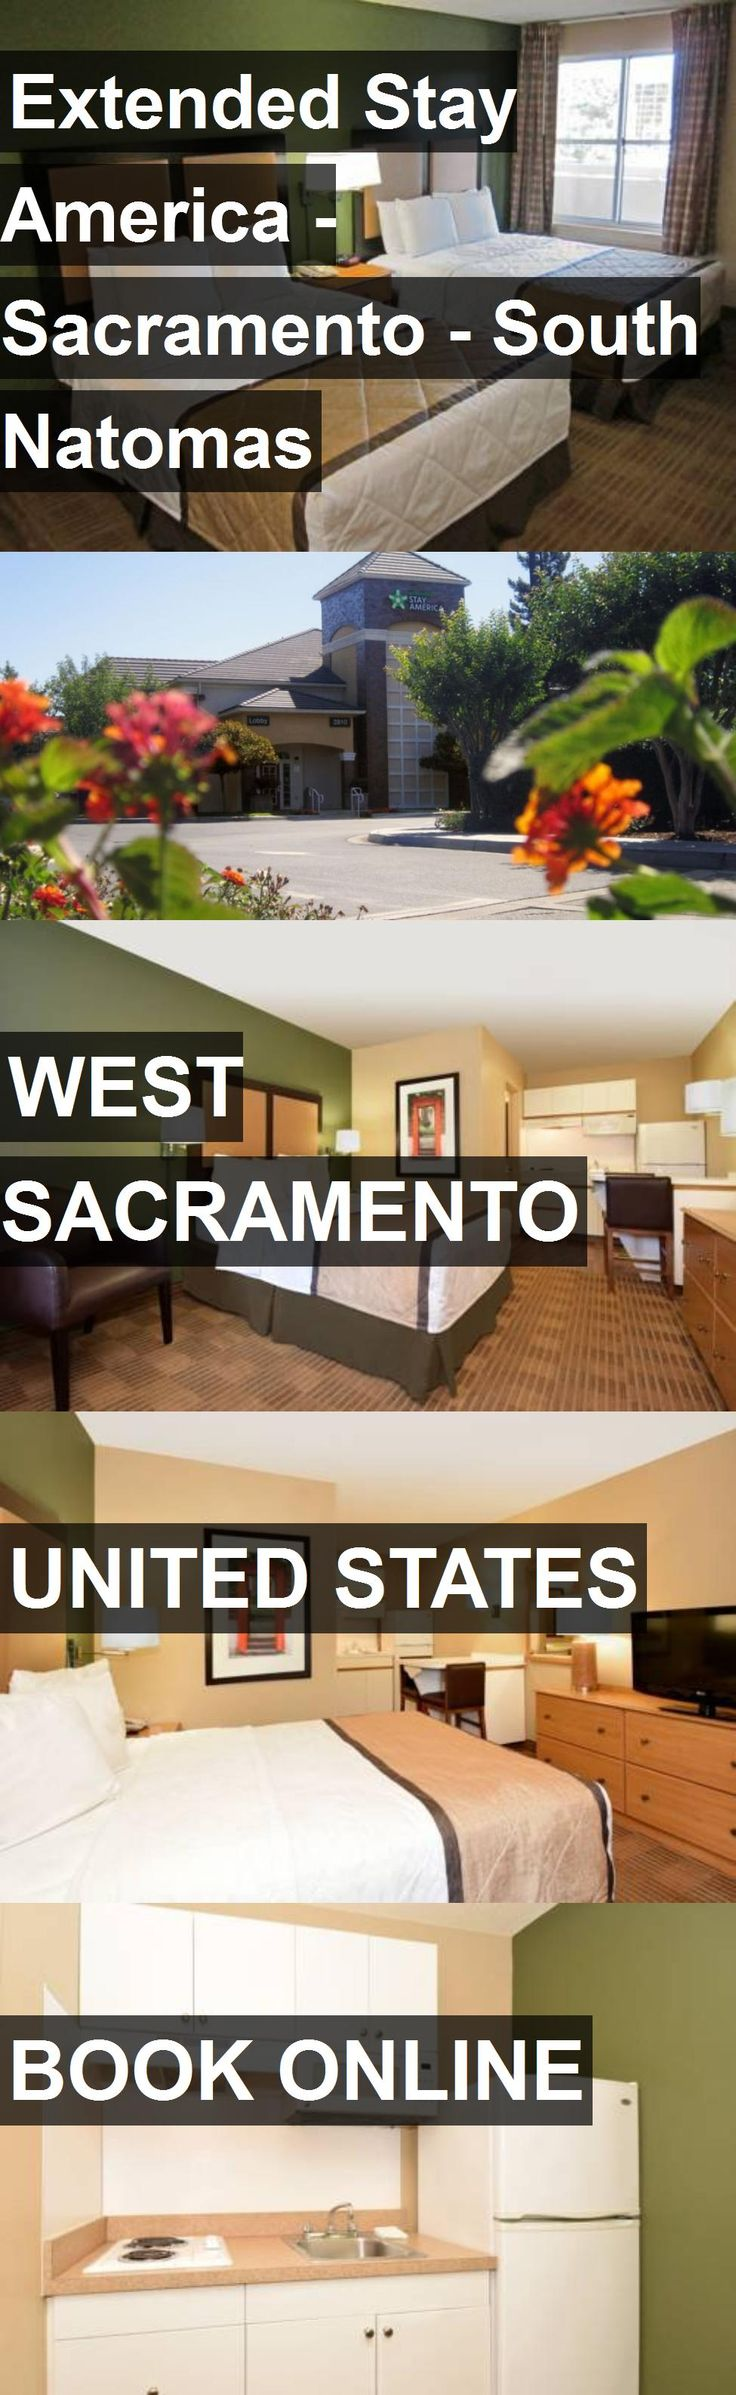 Hotel Extended Stay America - Sacramento - South Natomas in West Sacramento, United States. For more information, photos, reviews and best prices please follow the link. #UnitedStates #WestSacramento #ExtendedStayAmerica-Sacramento-SouthNatomas #hotel #travel #vacation